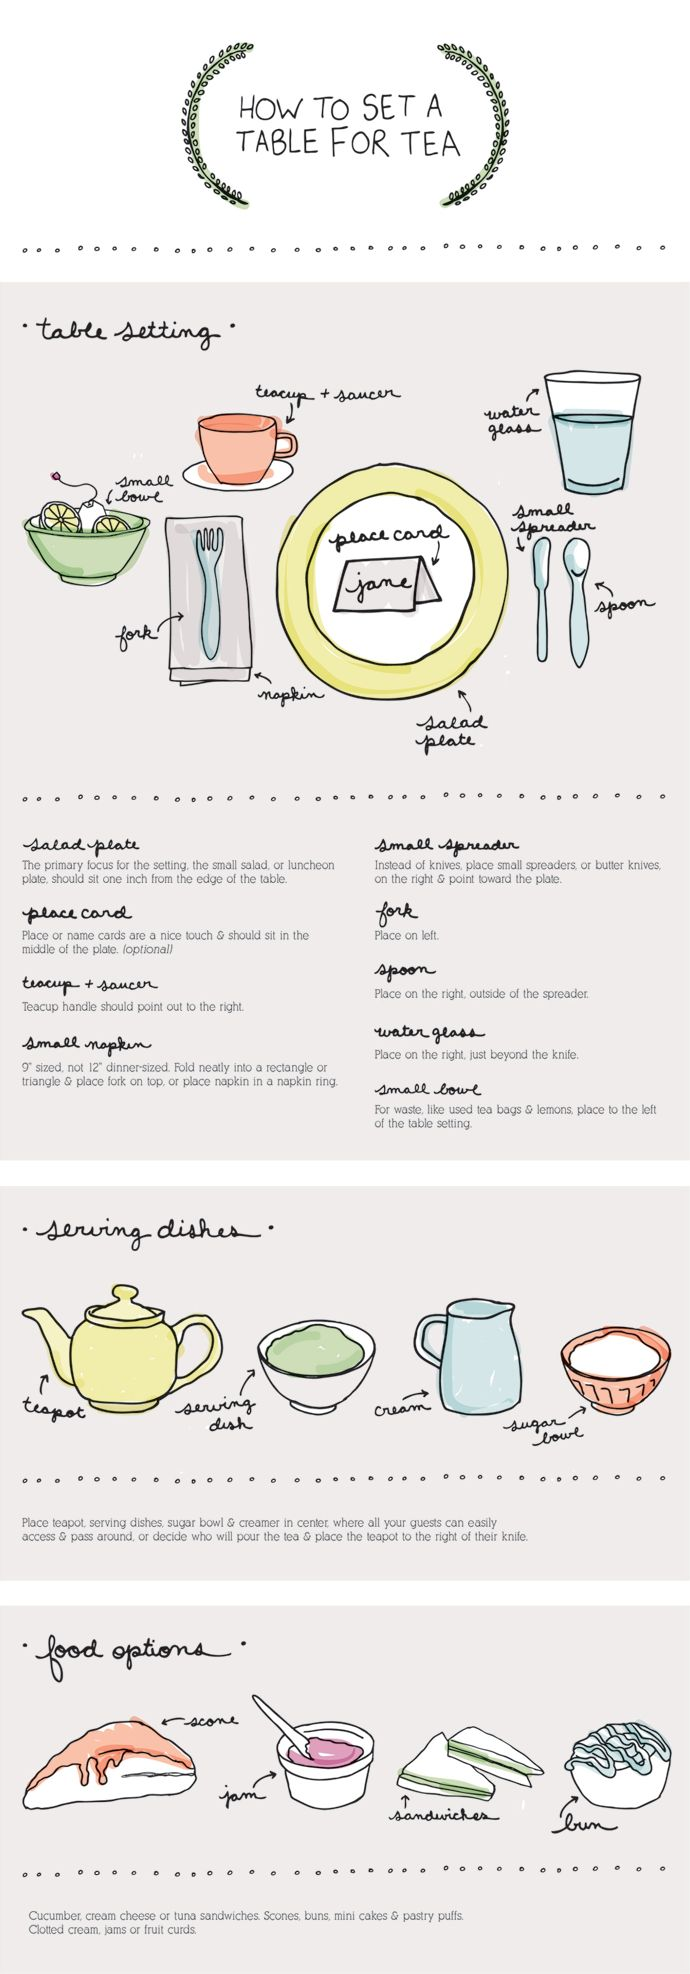 It's good to know tea etiquette just in case I throw a tea party... or something similar to it lol